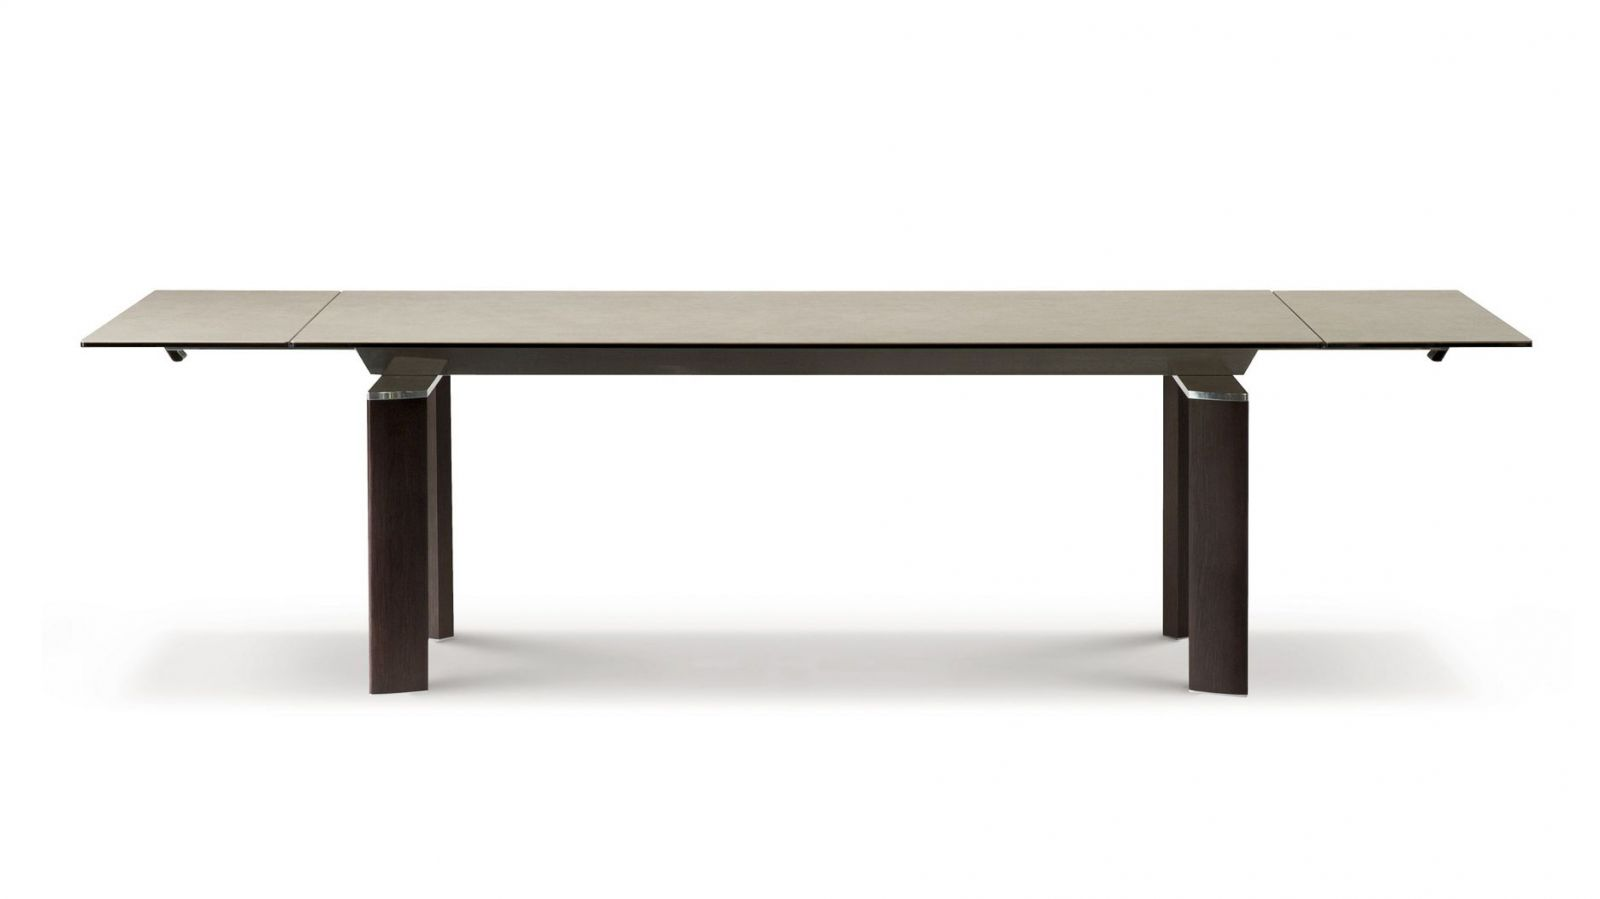 Grande table de repas roche bobois chrono wood meuble et for Table de repas design